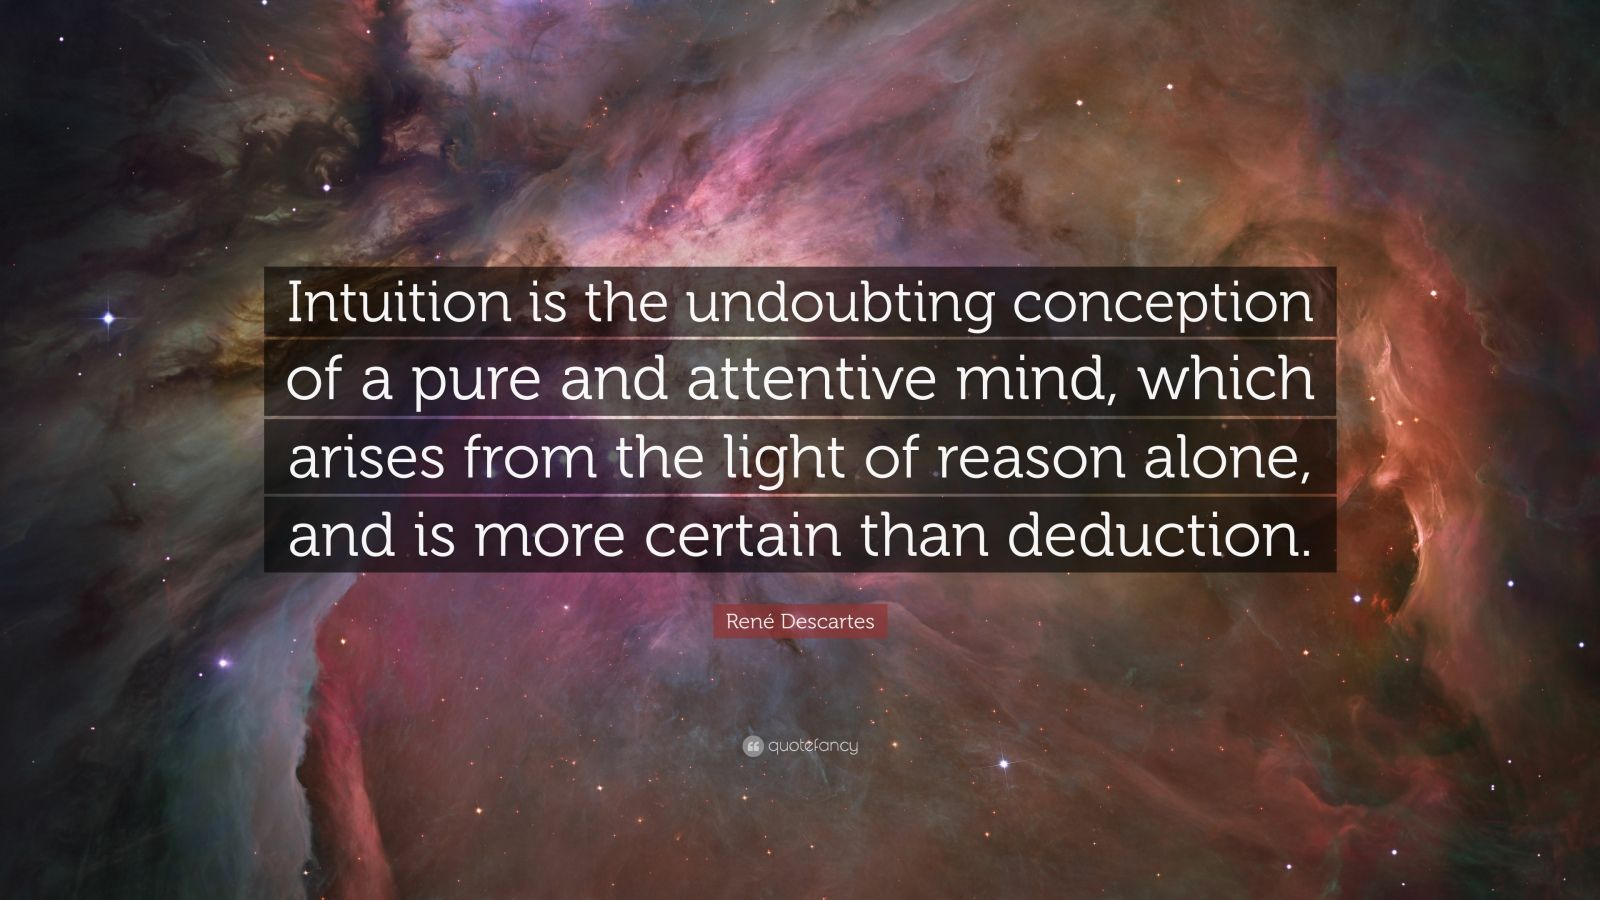 """René Descartes Quote: """"Intuition is the undoubting conception of a pure and attentive mind, which arises from the light of reason alone, and is more certain than deduction."""""""